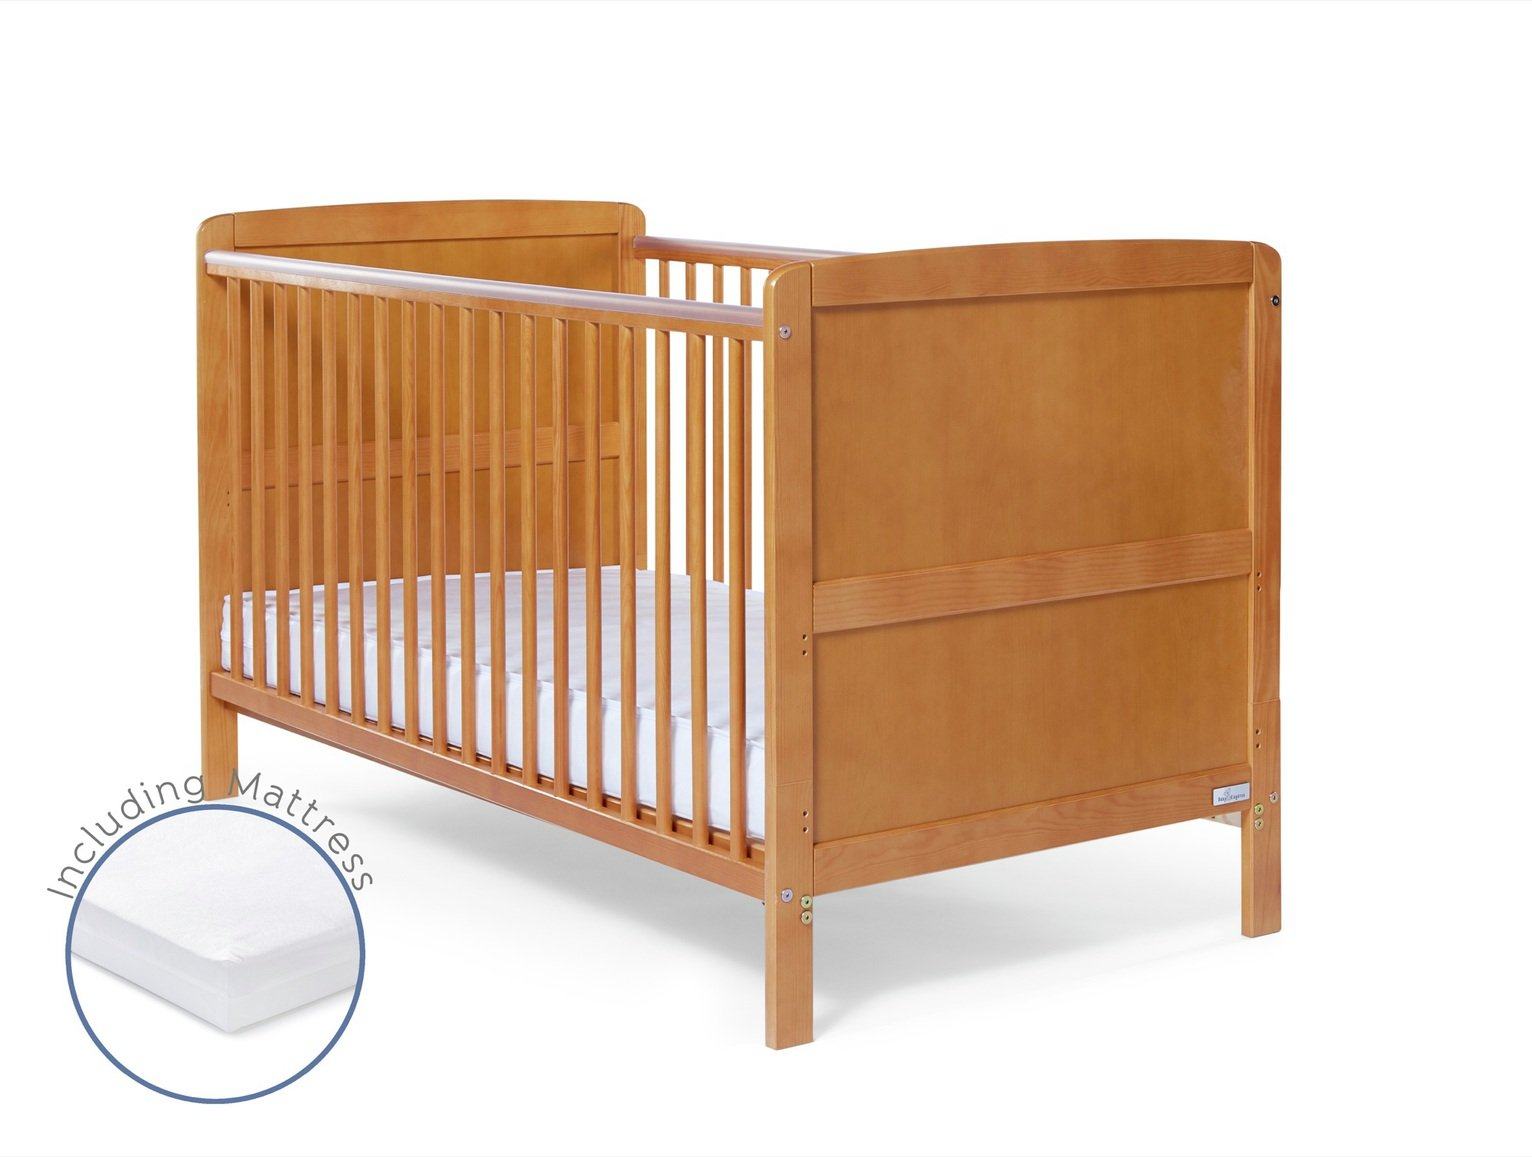 Baby Elegance Travis Cot Bed with Mattress - Antique Pine